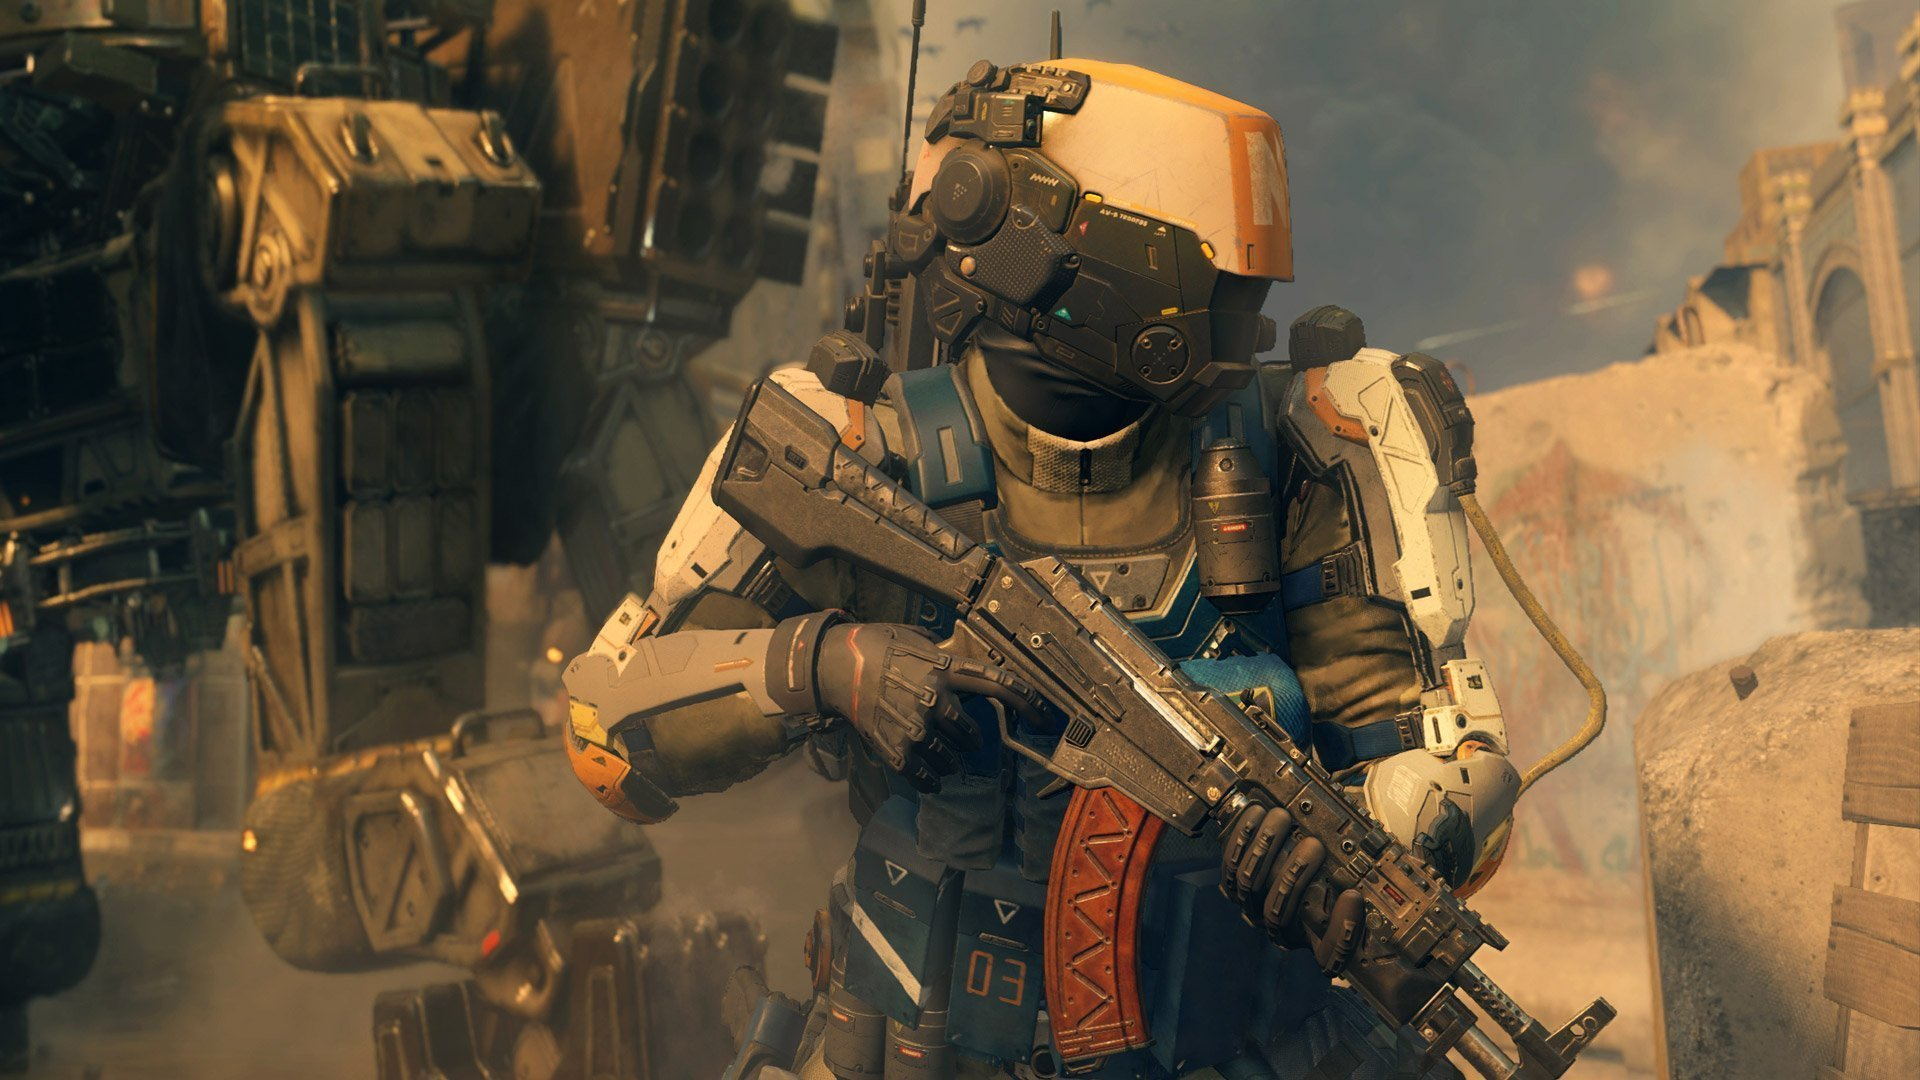 Call Of Duty Black Ops 3 Hd Wallpapers: Call Of Duty: Black Ops 3 Wallpapers For 1920x1080 HD